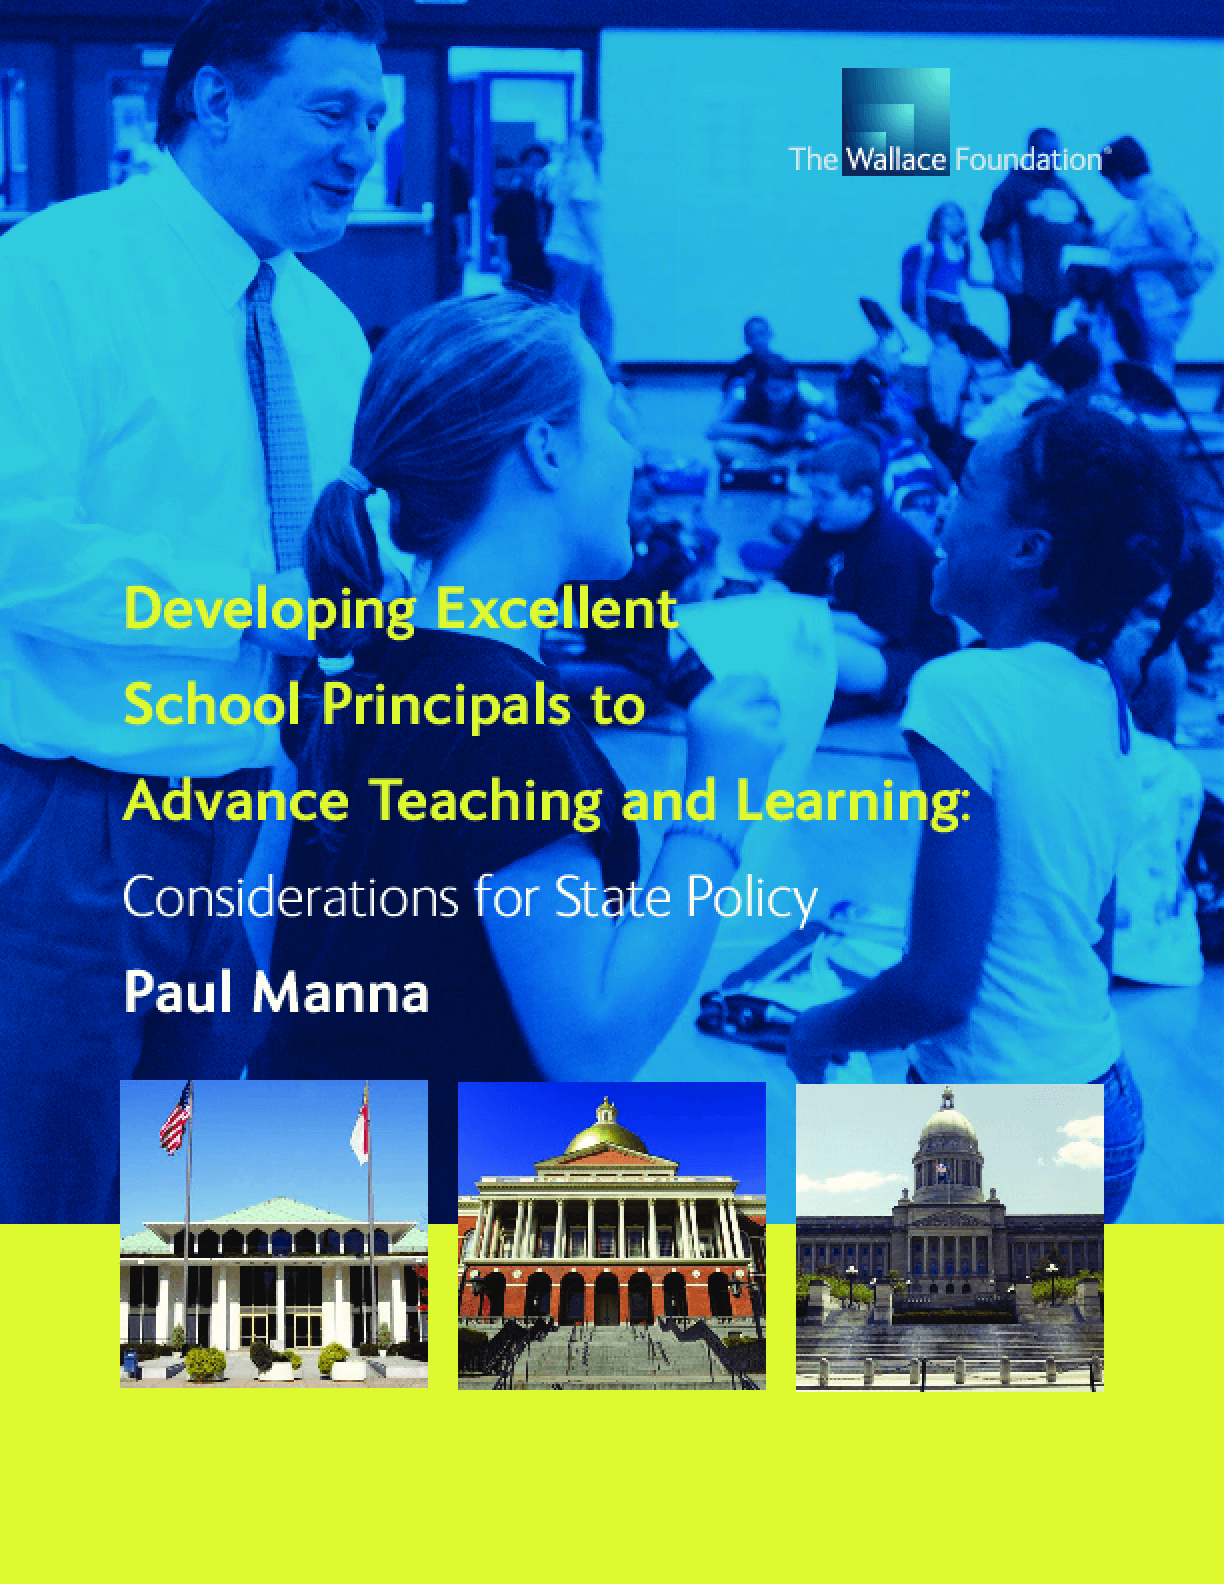 Developing Excellent School Principals To Advance Teaching and Learning: Considerations for State Policy